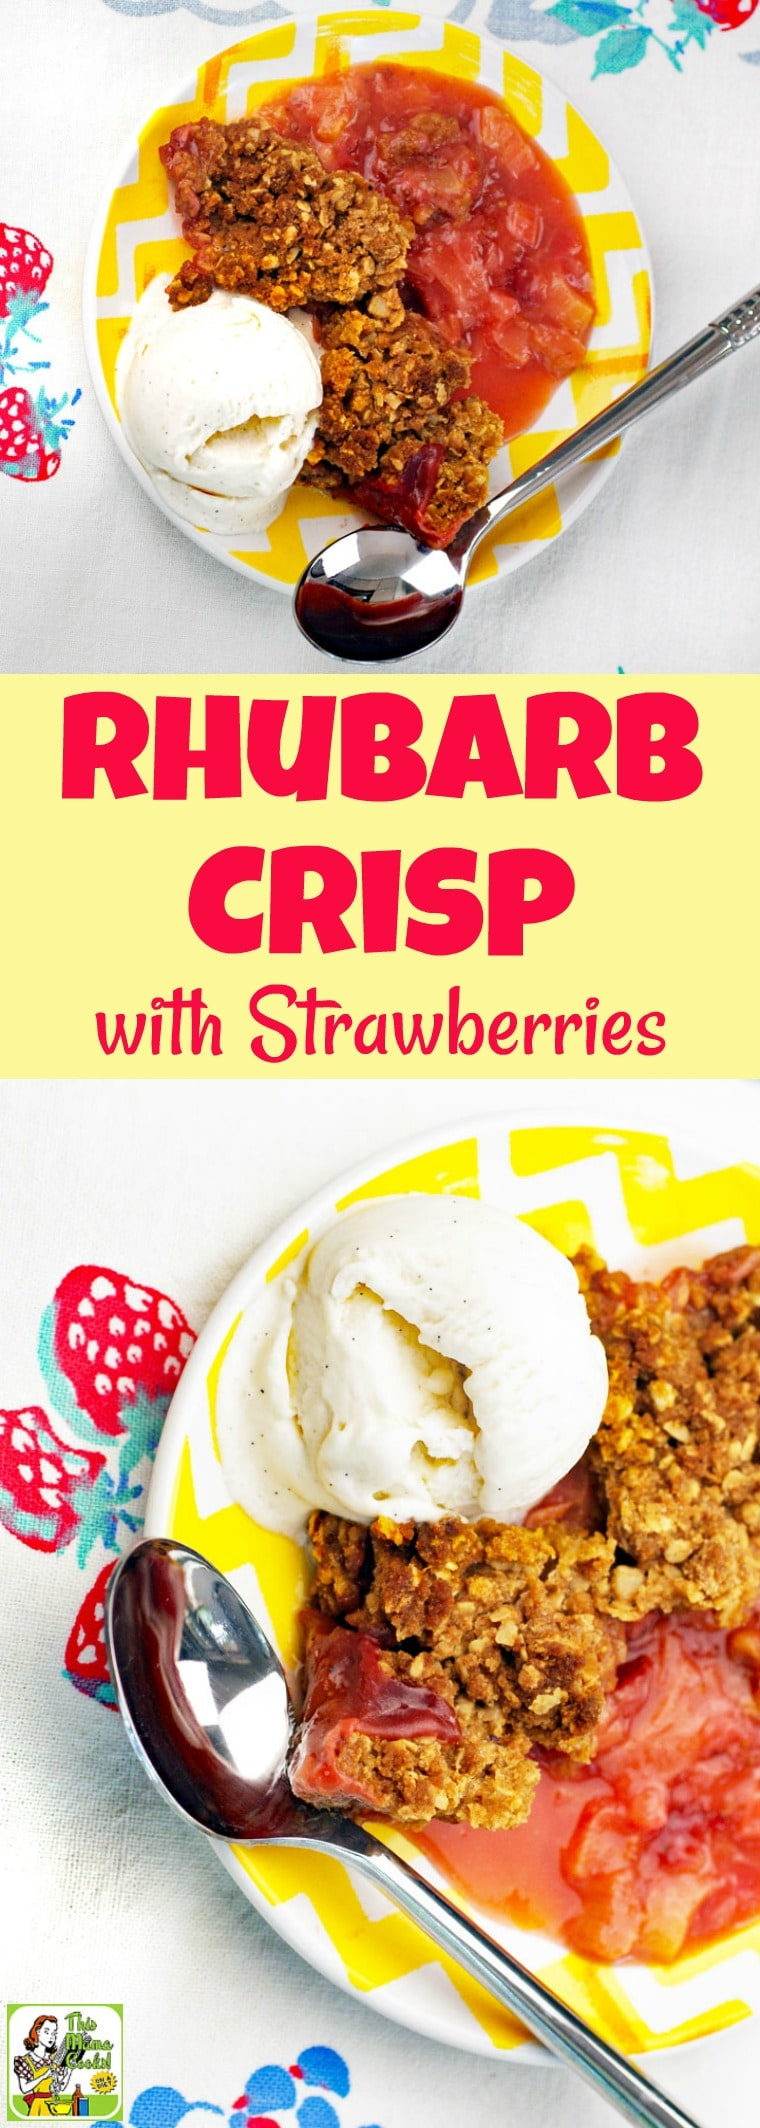 Rhubarb Crisp with Strawberries